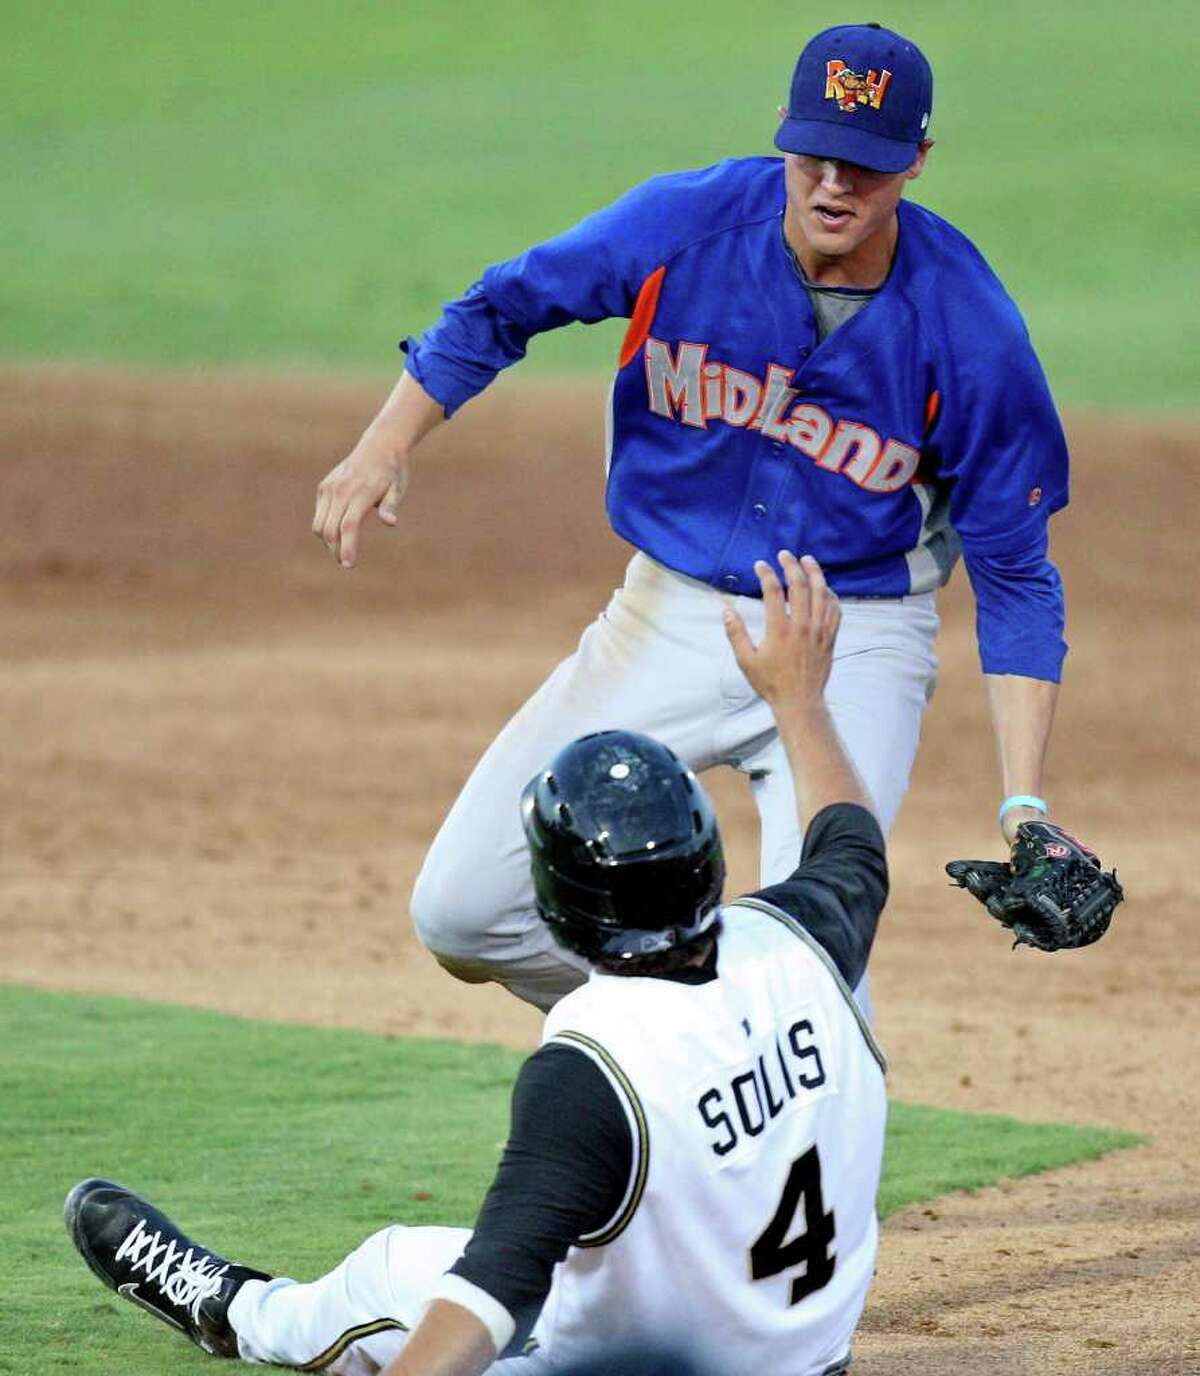 Missions' Ali Solis is tagged out by Rockhounds' Grant Green after slipping during a rundown in the fifth inning.